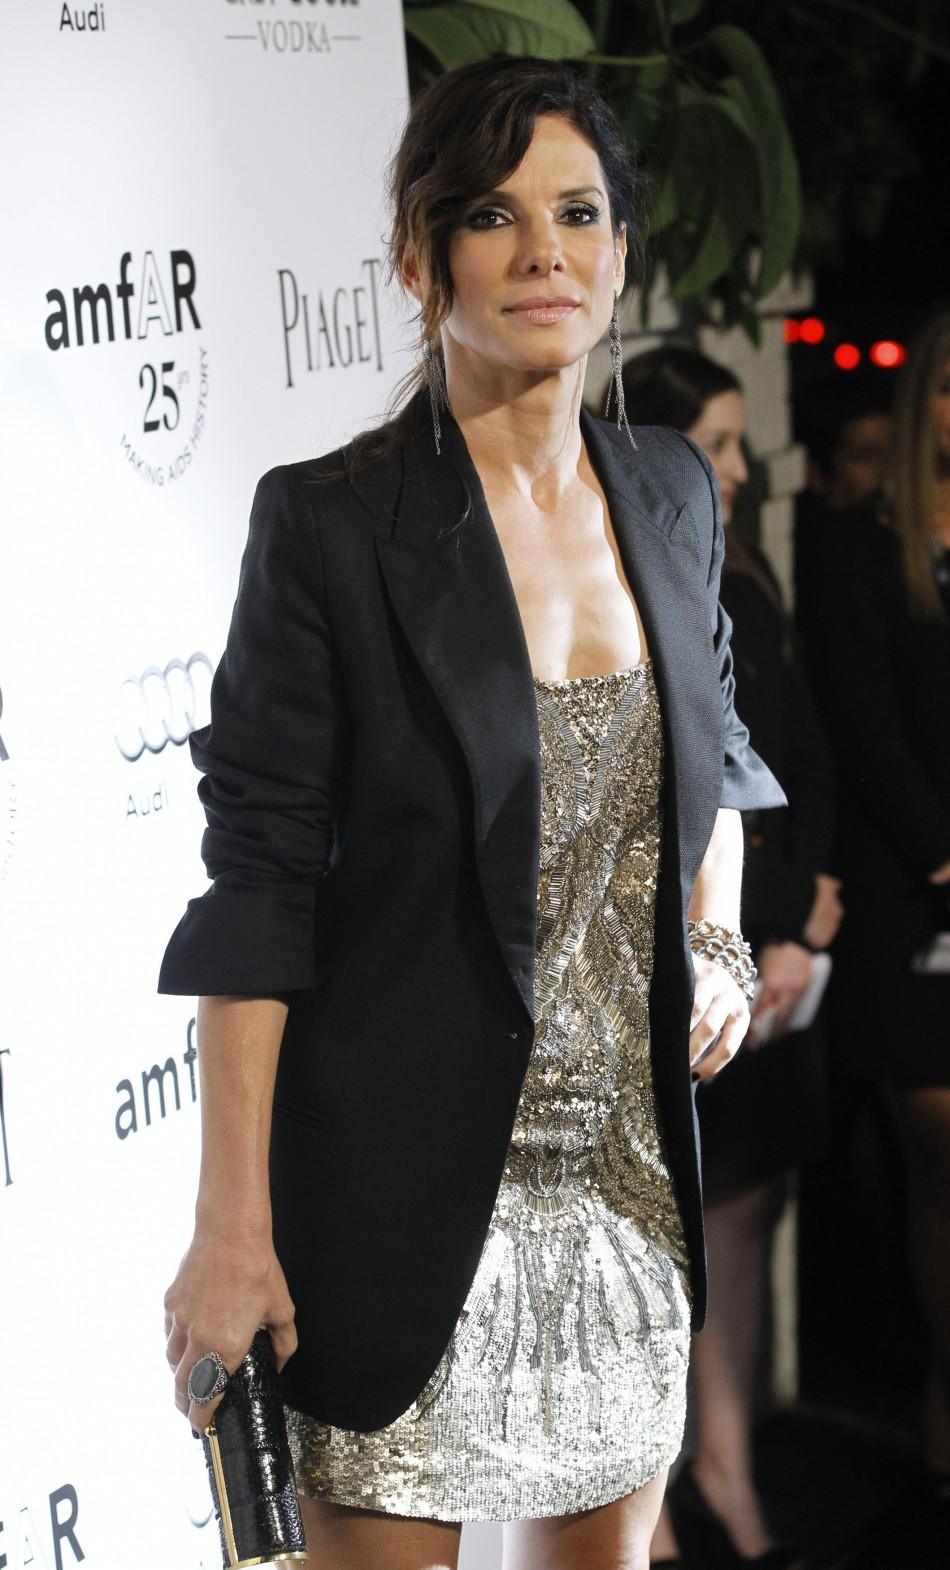 Actress Sandra Bullock poses at the amfAR's Inspiration LA Gala in Hollywood, California